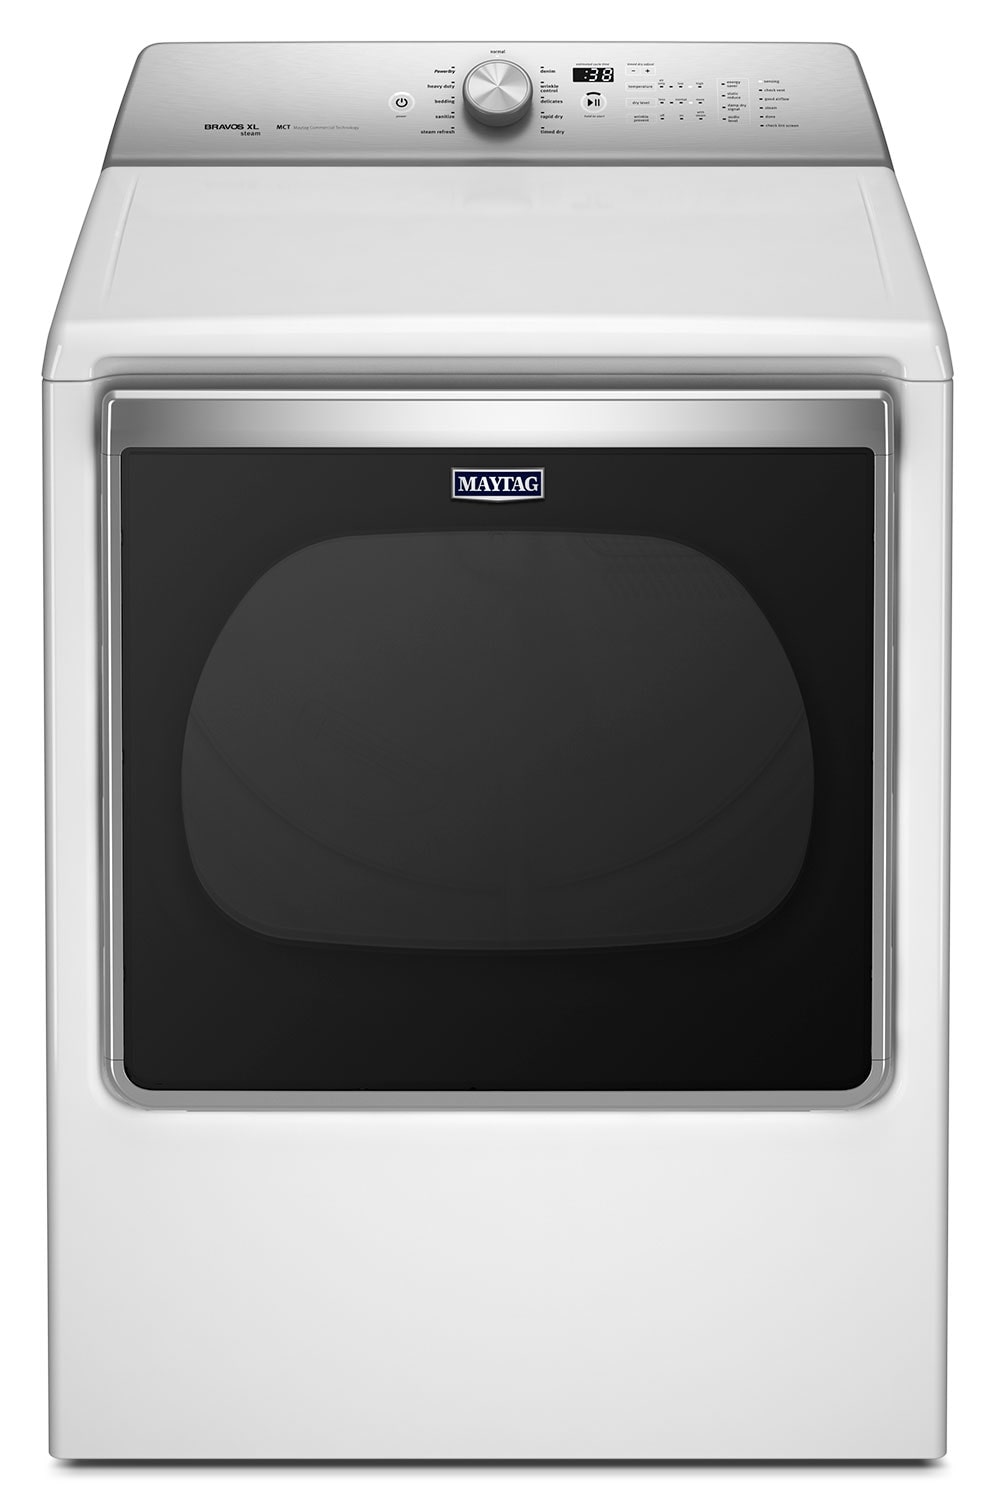 Maytag Electric Dryer (8.8 Cu. Ft.) YMEDB855DW